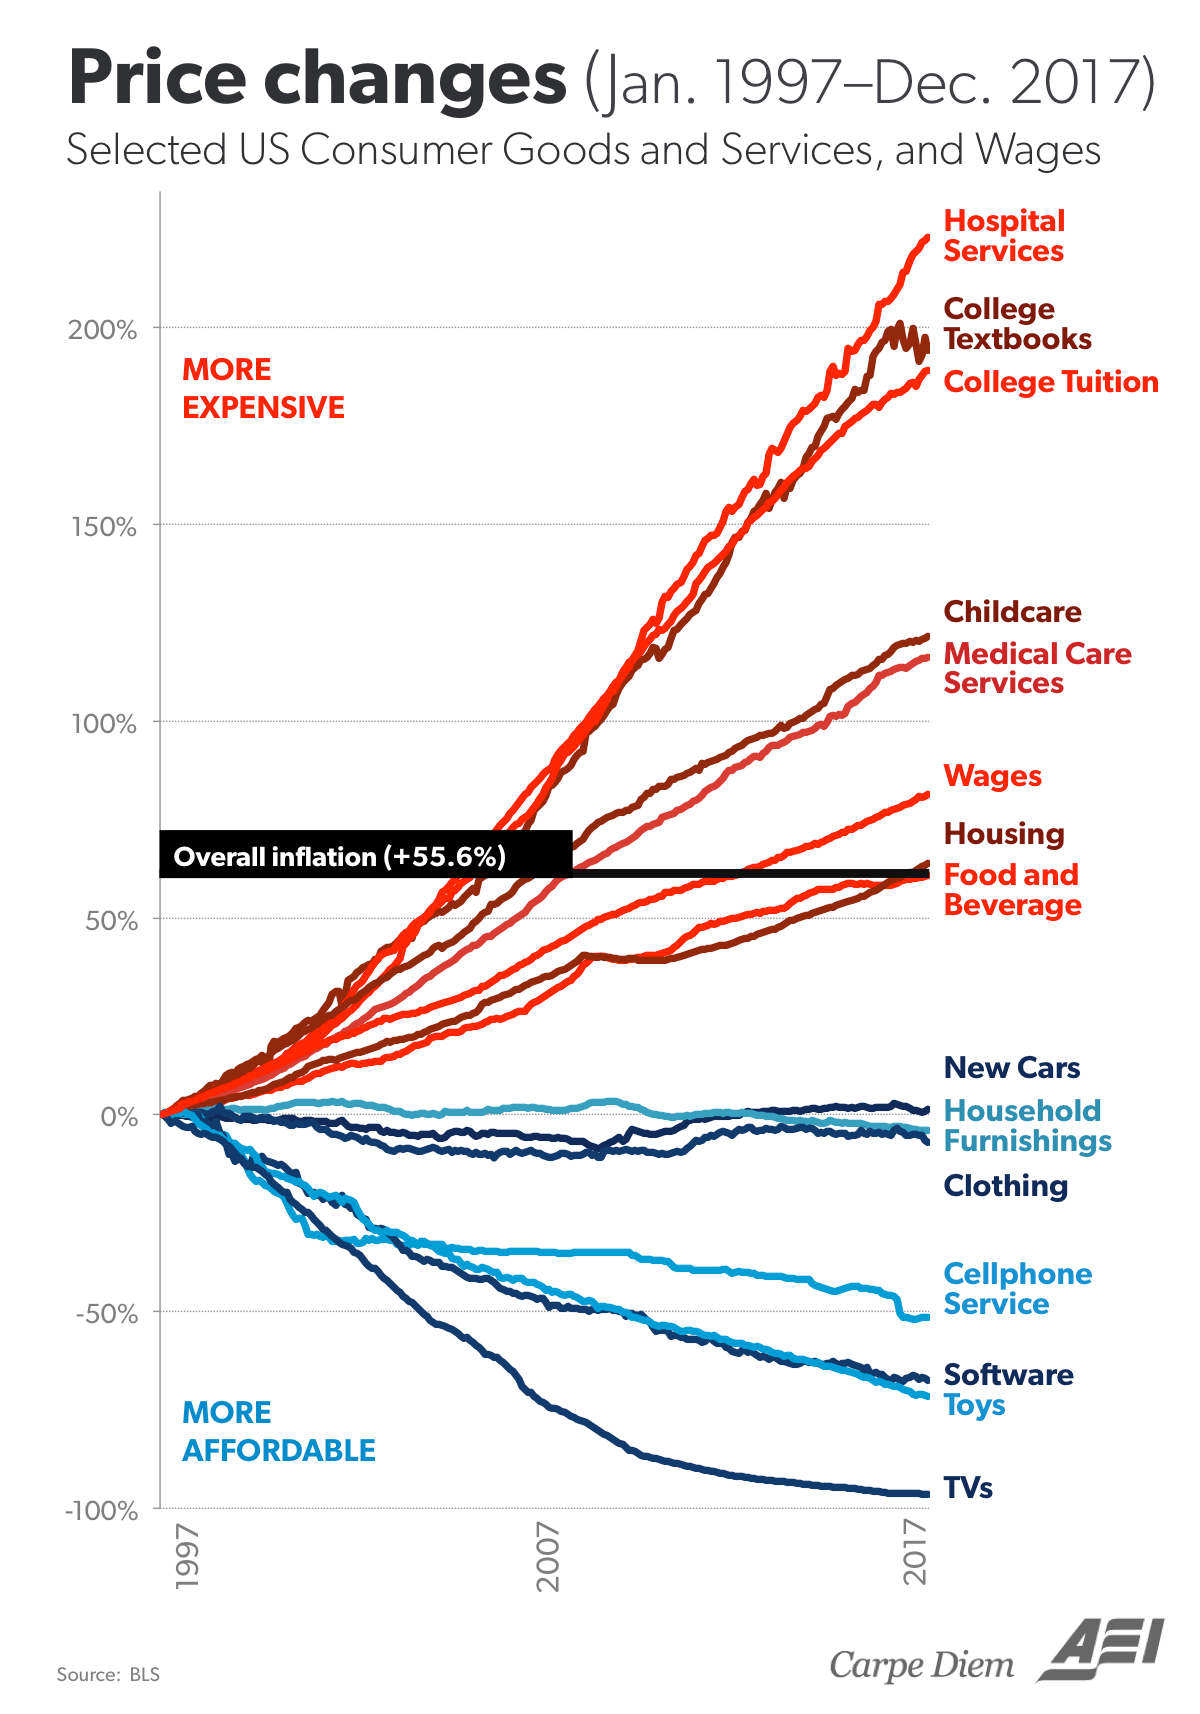 hight resolution of as ritholtz points out the two big outliers to the upside are health care and college on the flip side clothes cars tvs and technology in general